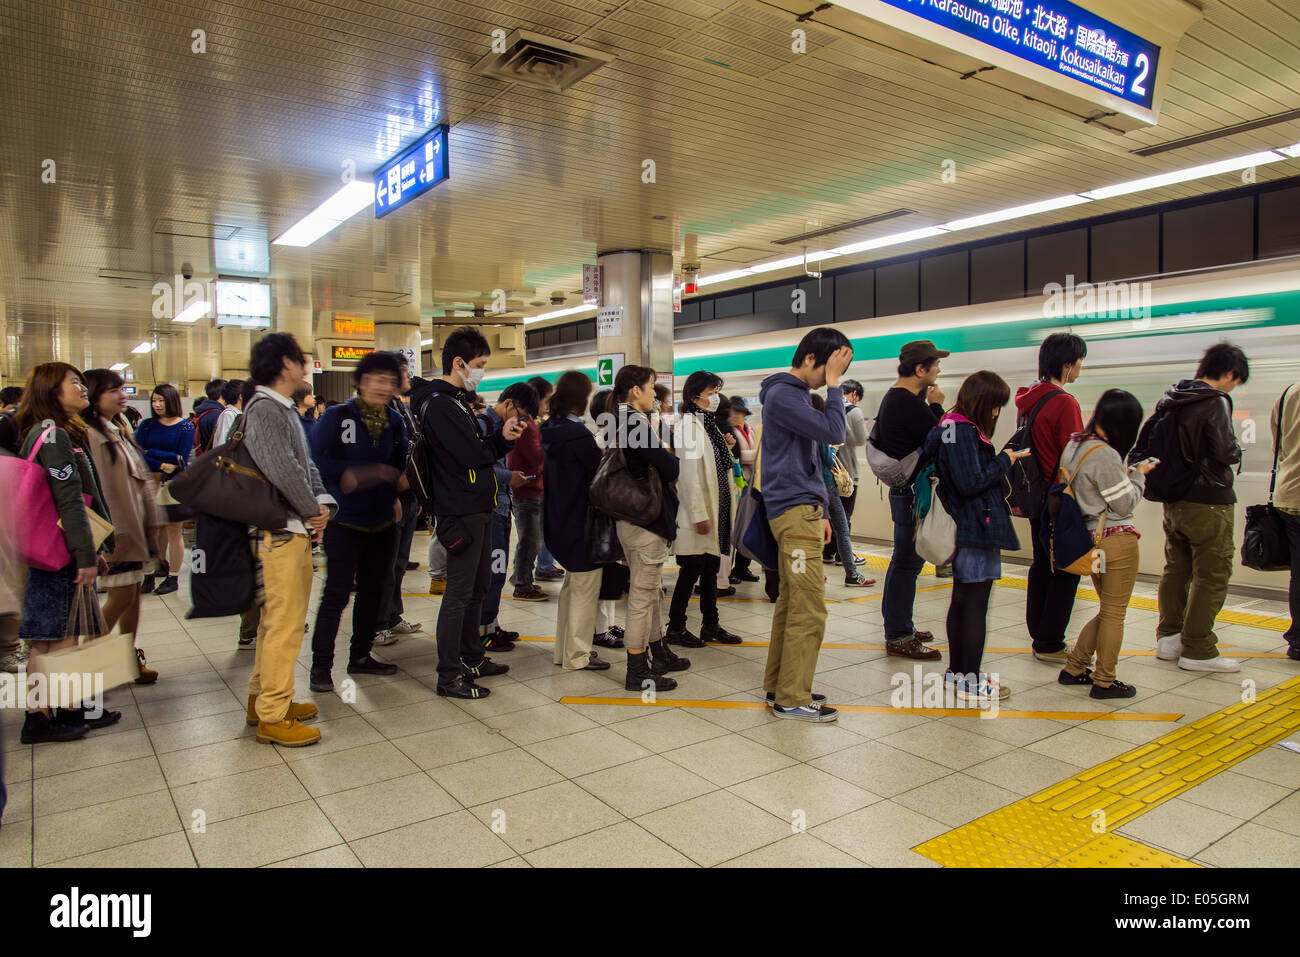 People on line waiting for the subway train, Kyoto, Japan ...